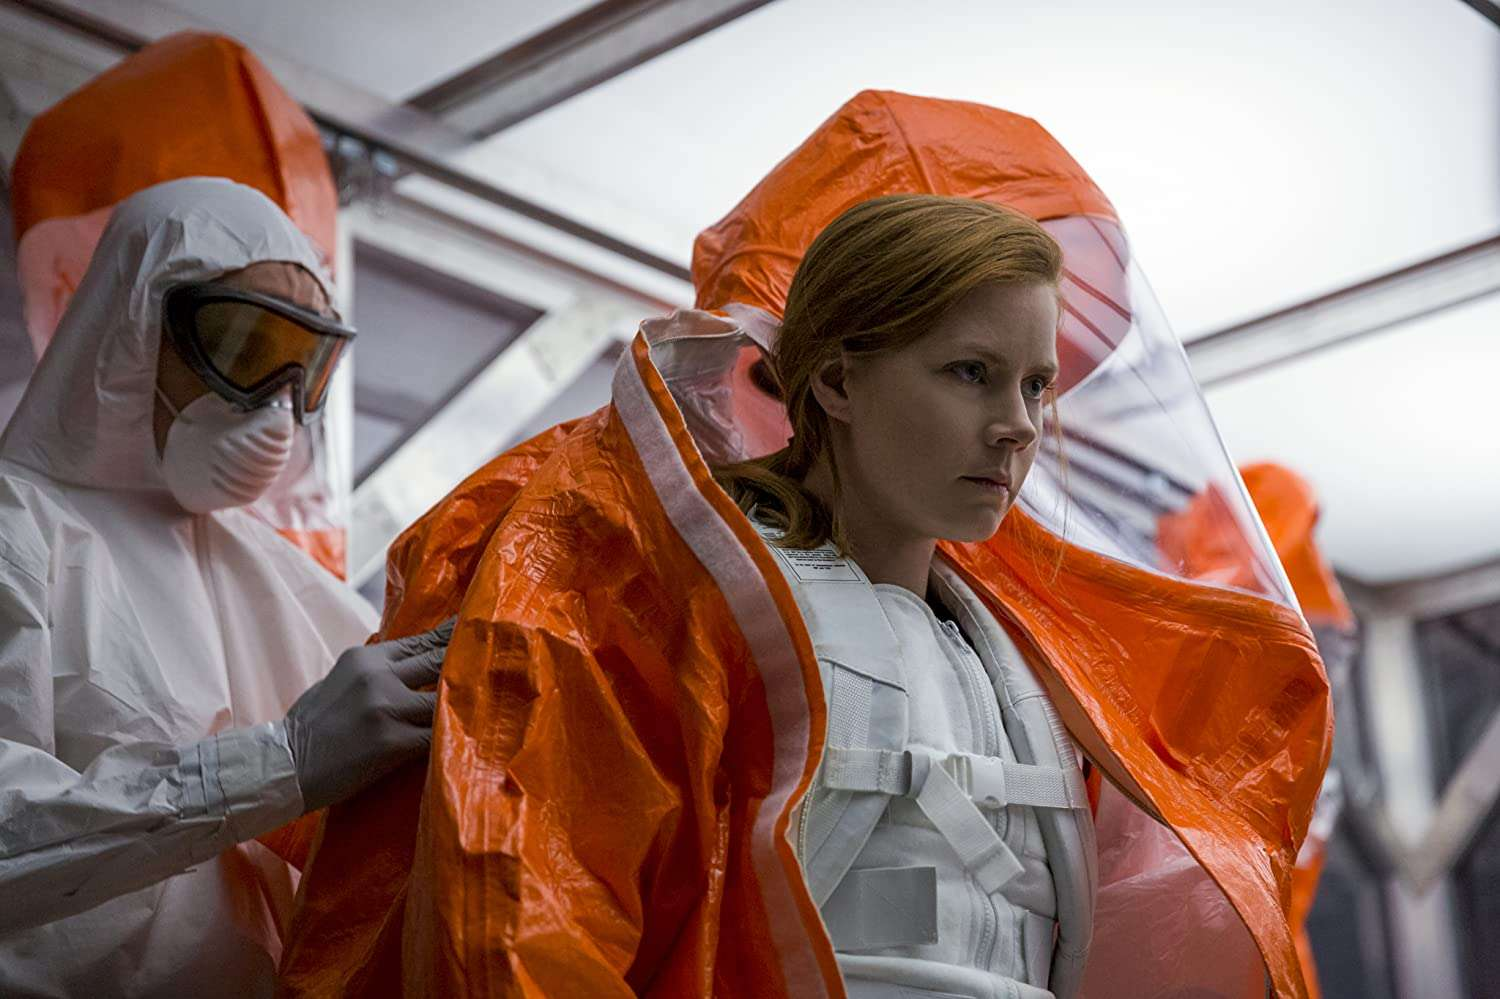 Arrival-2018